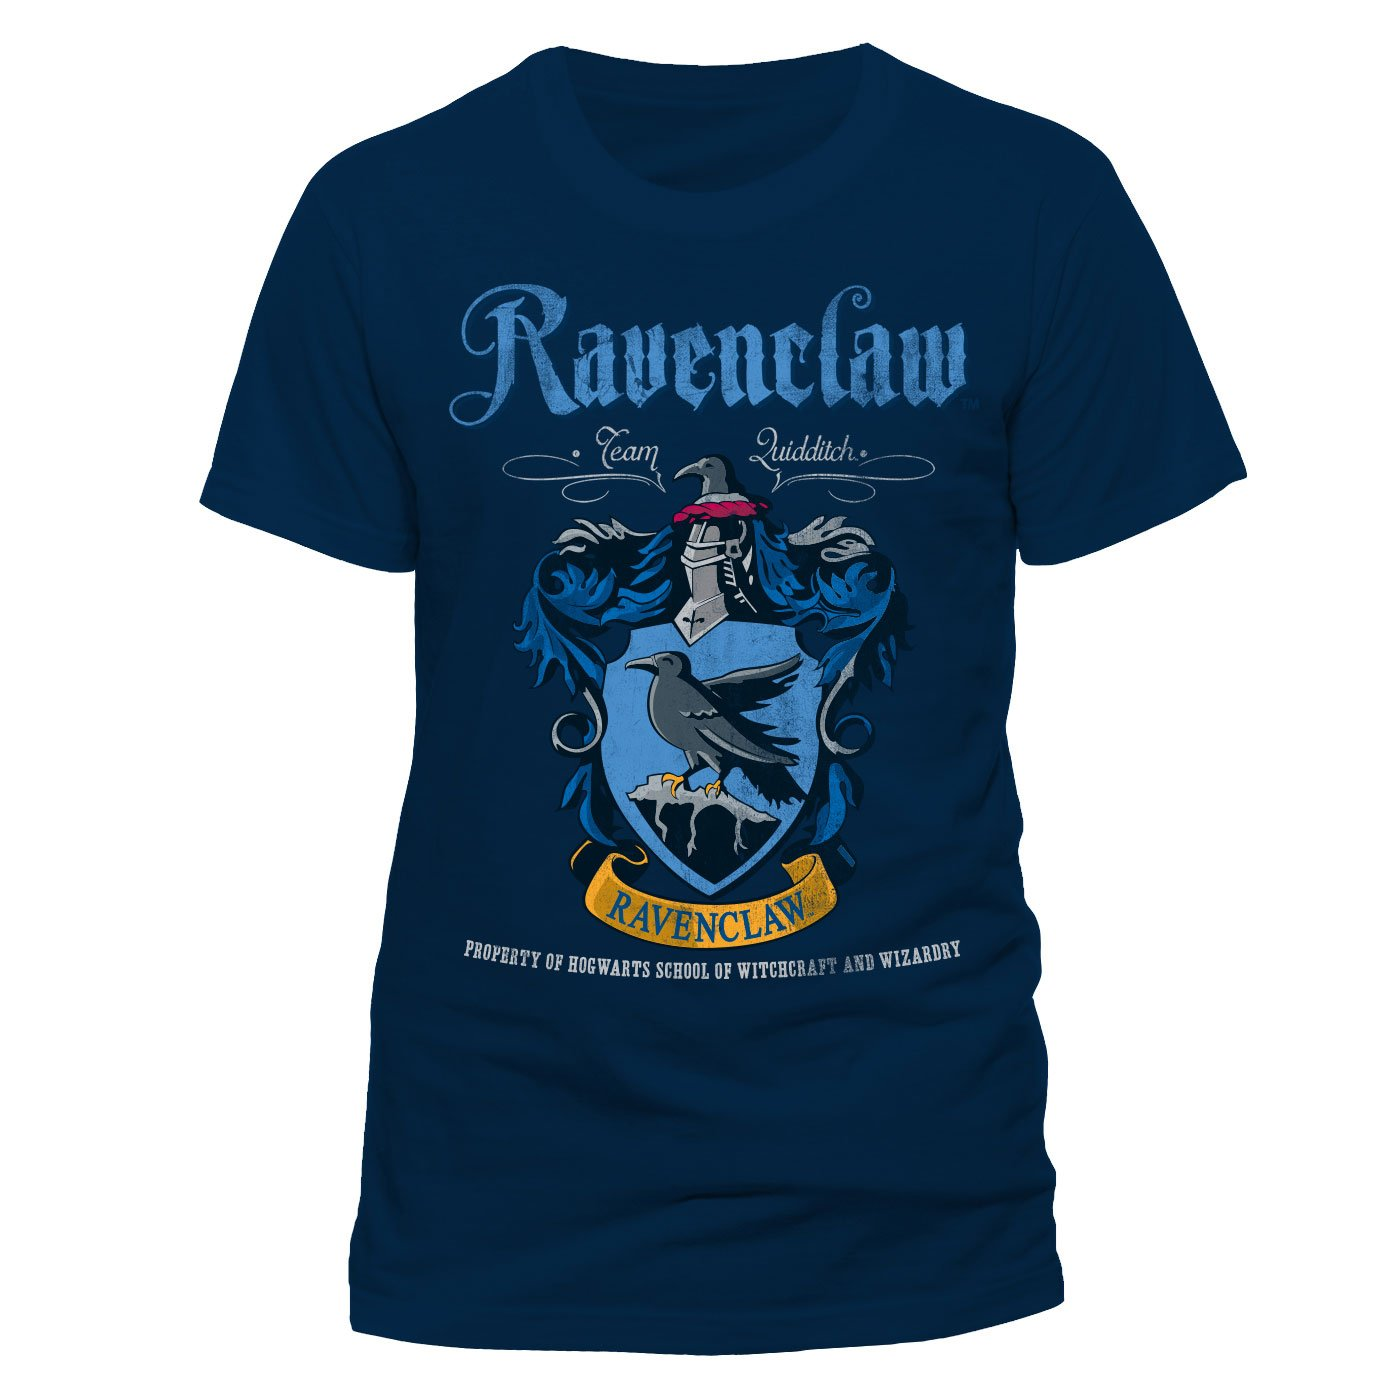 Harry Potter T-Shirt Ravenclaw Quidditch Size XL